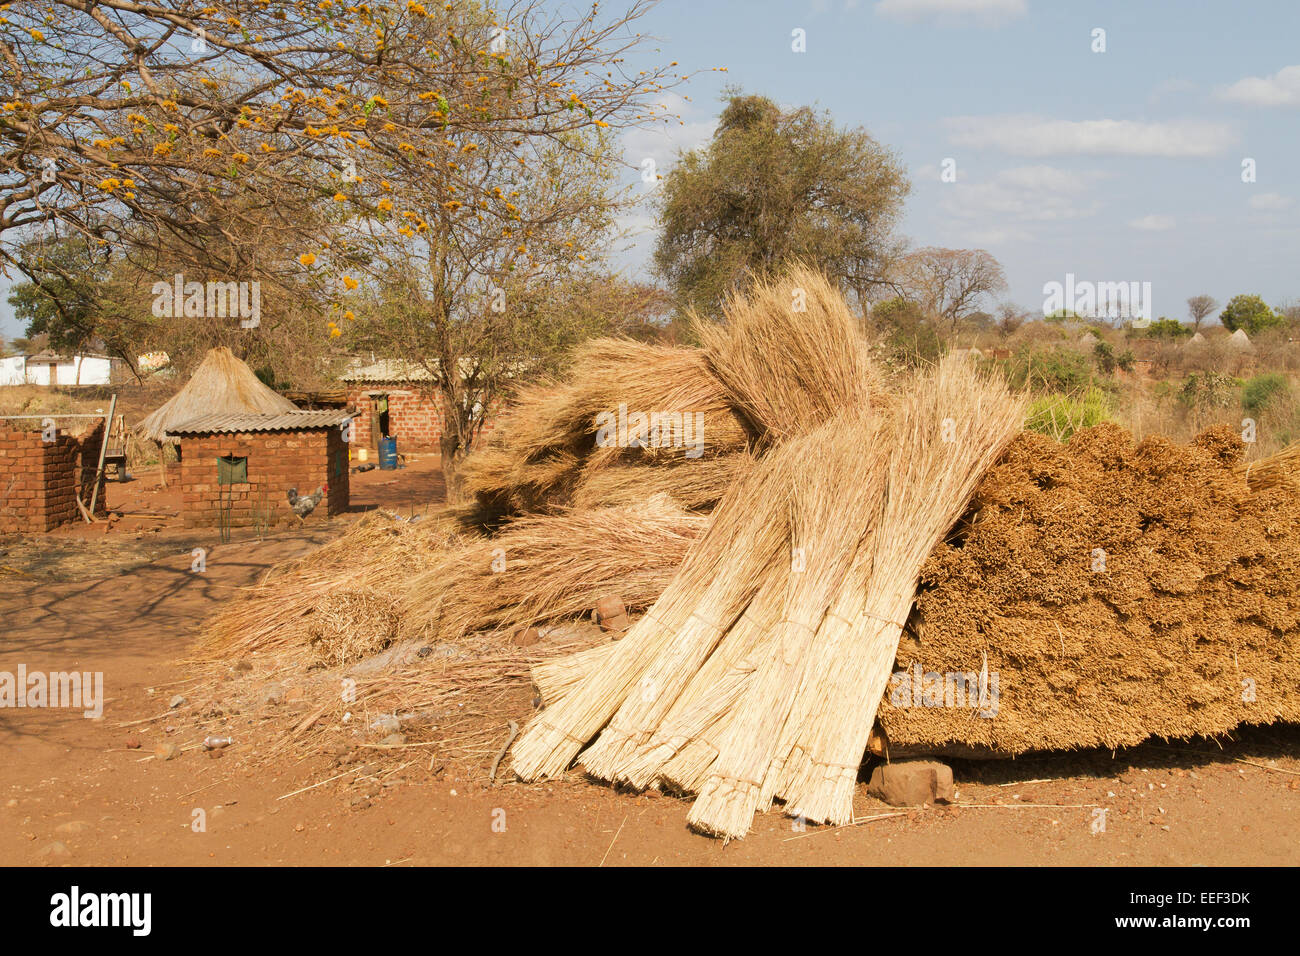 Pile Of Bundles Of Thatching Grass To Make A Thatched Roof At The Chiawa  Cultural Village On The Zambezi River In Zambia, Africa